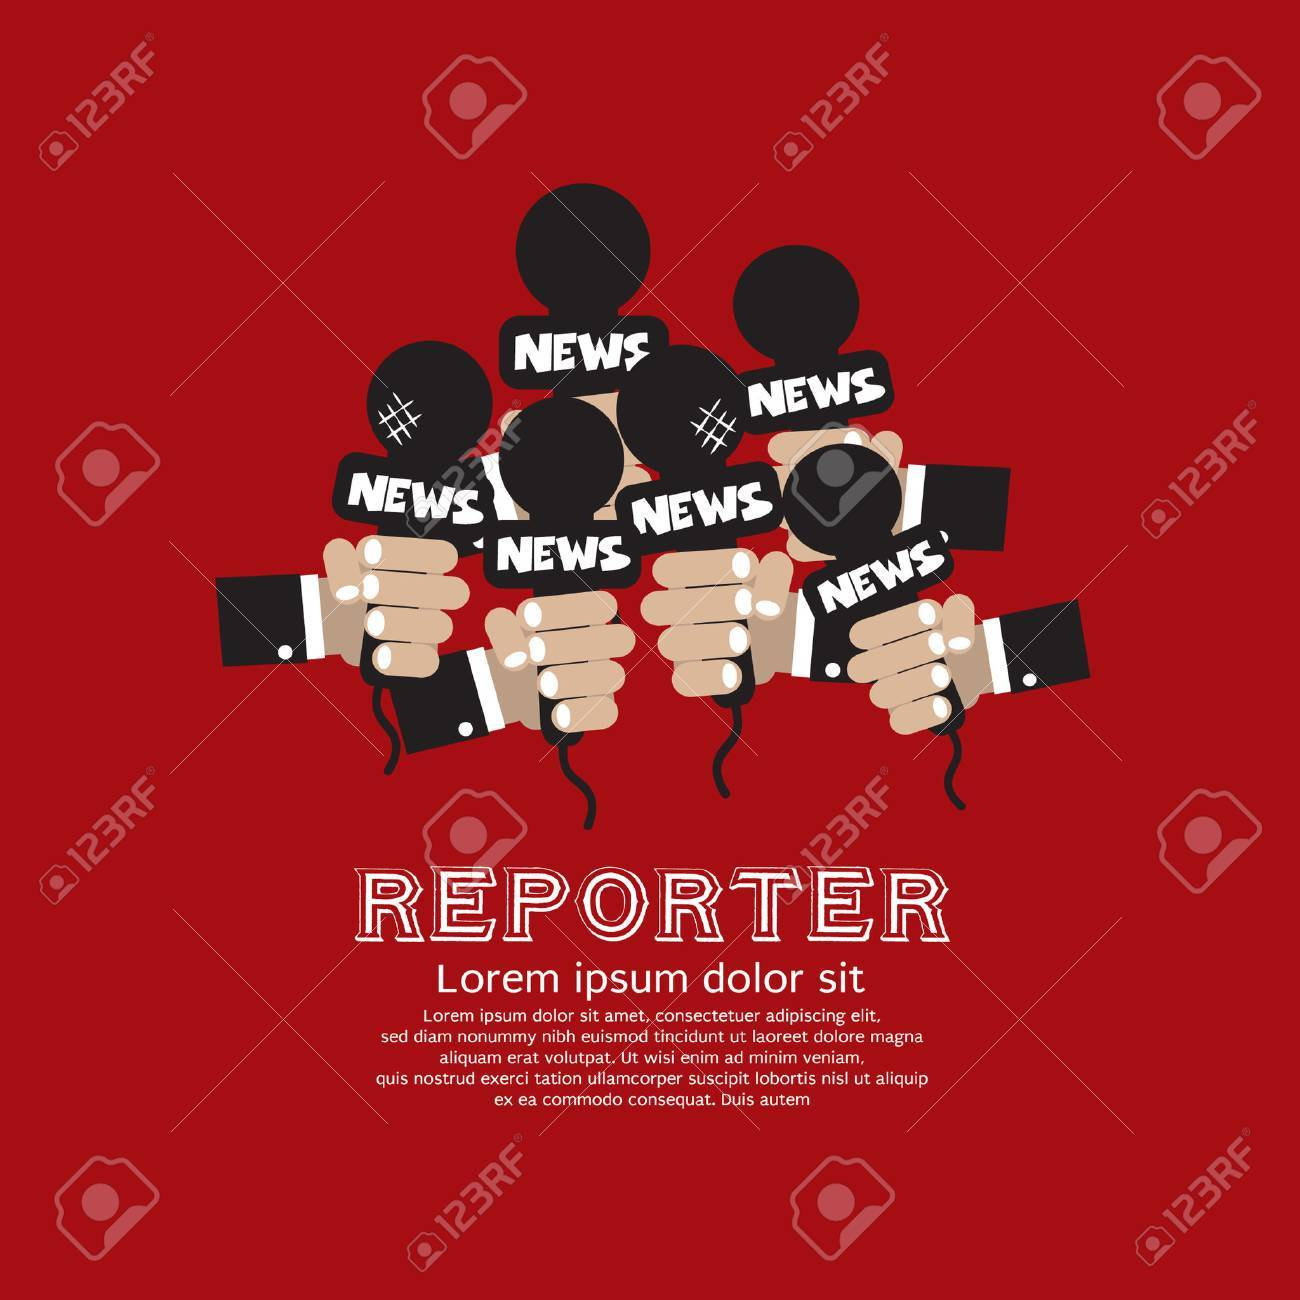 Reporter Concept Vector Illustration Stock Vector - 23651184